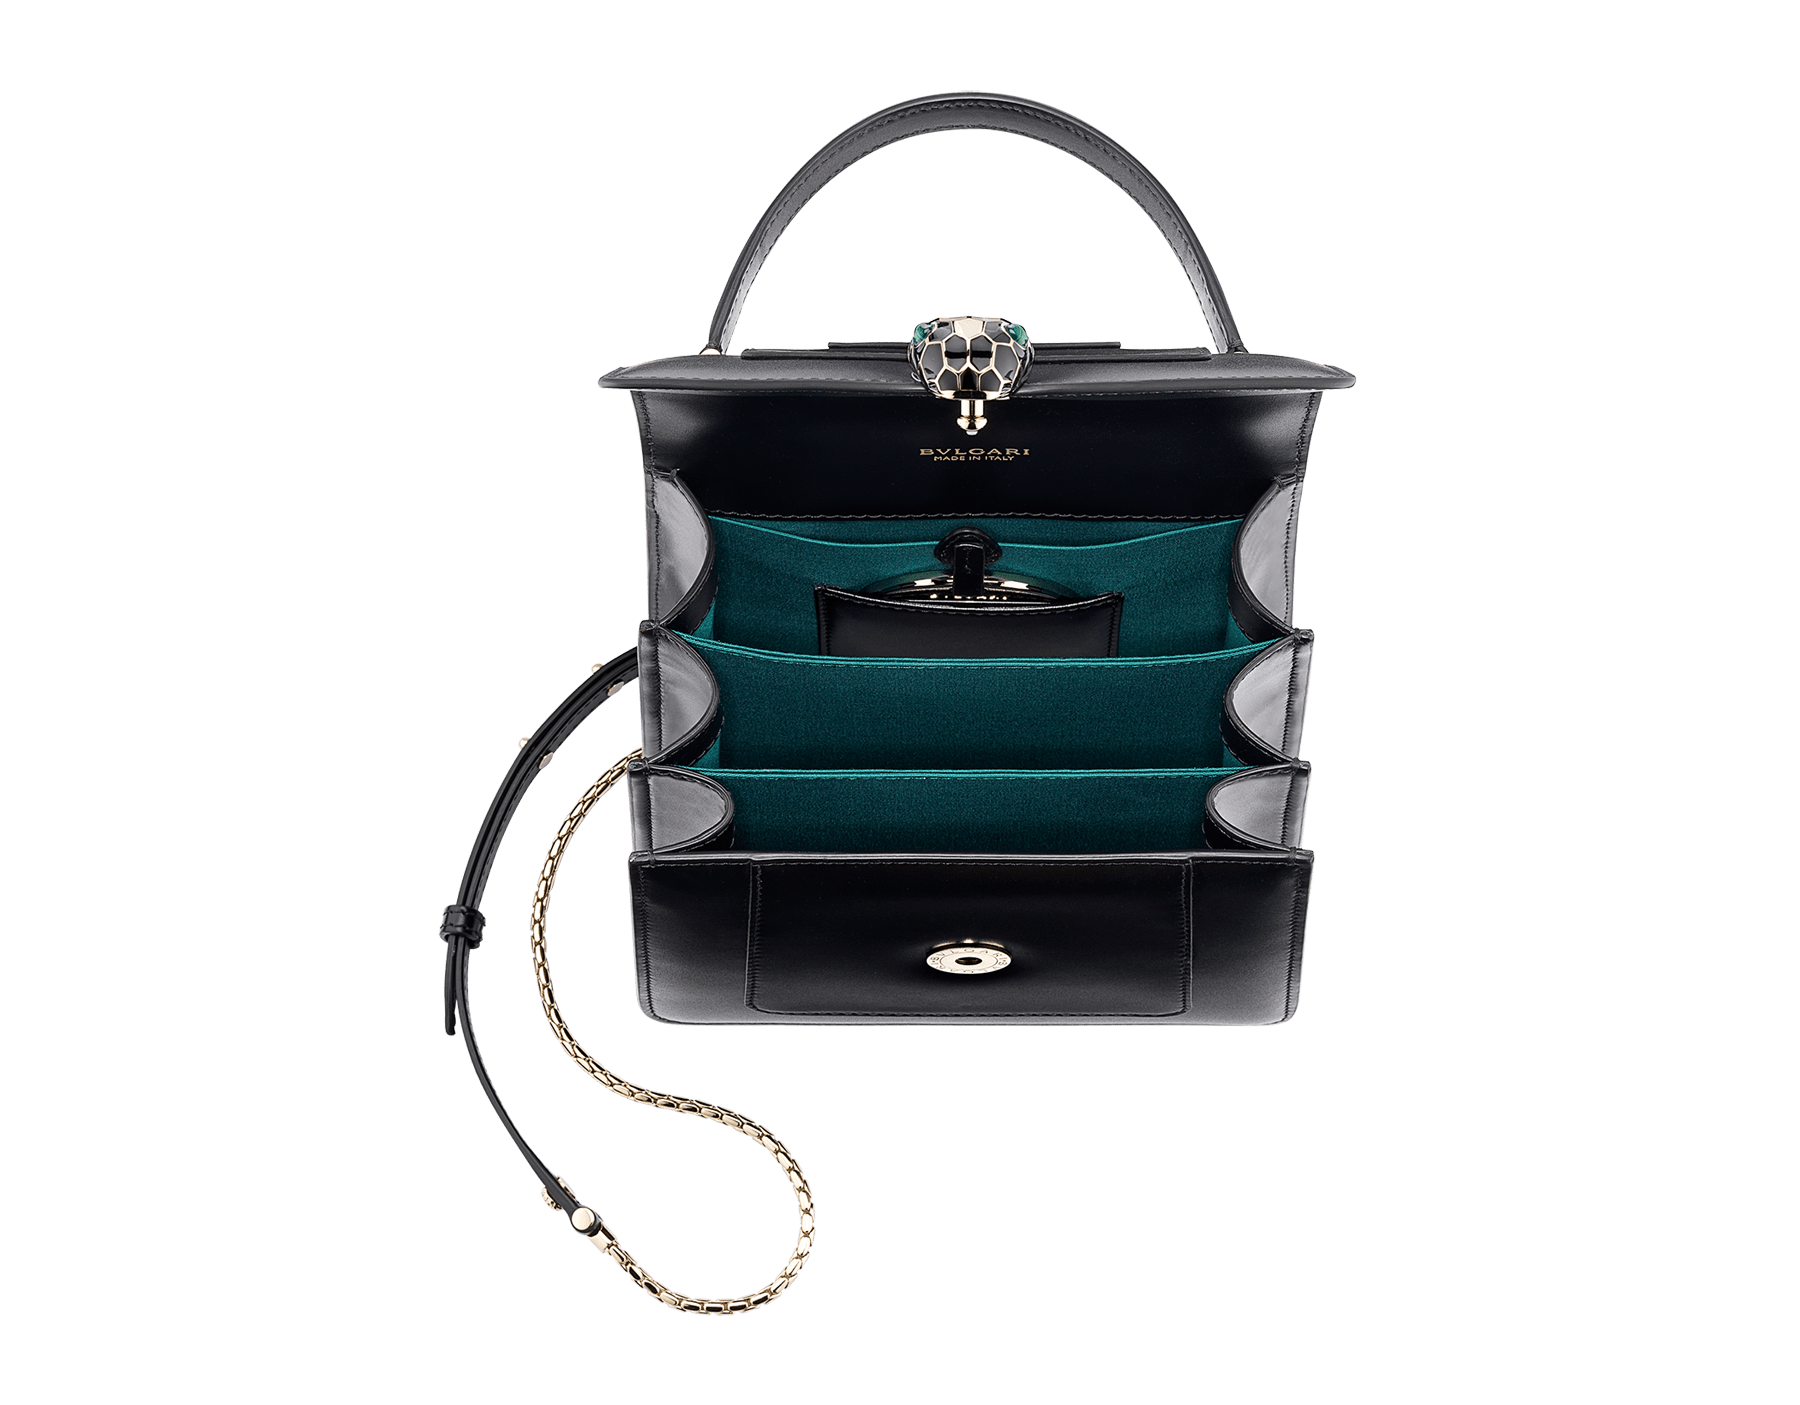 """""""Serpenti Forever"""" top-handle bag in black calfskin with emerald-green grosgrain inner lining. Iconic snakehead closure in light gold-plated brass embellished with black and agate-white enamel and green malachite eyes 1122-CLa image 4"""